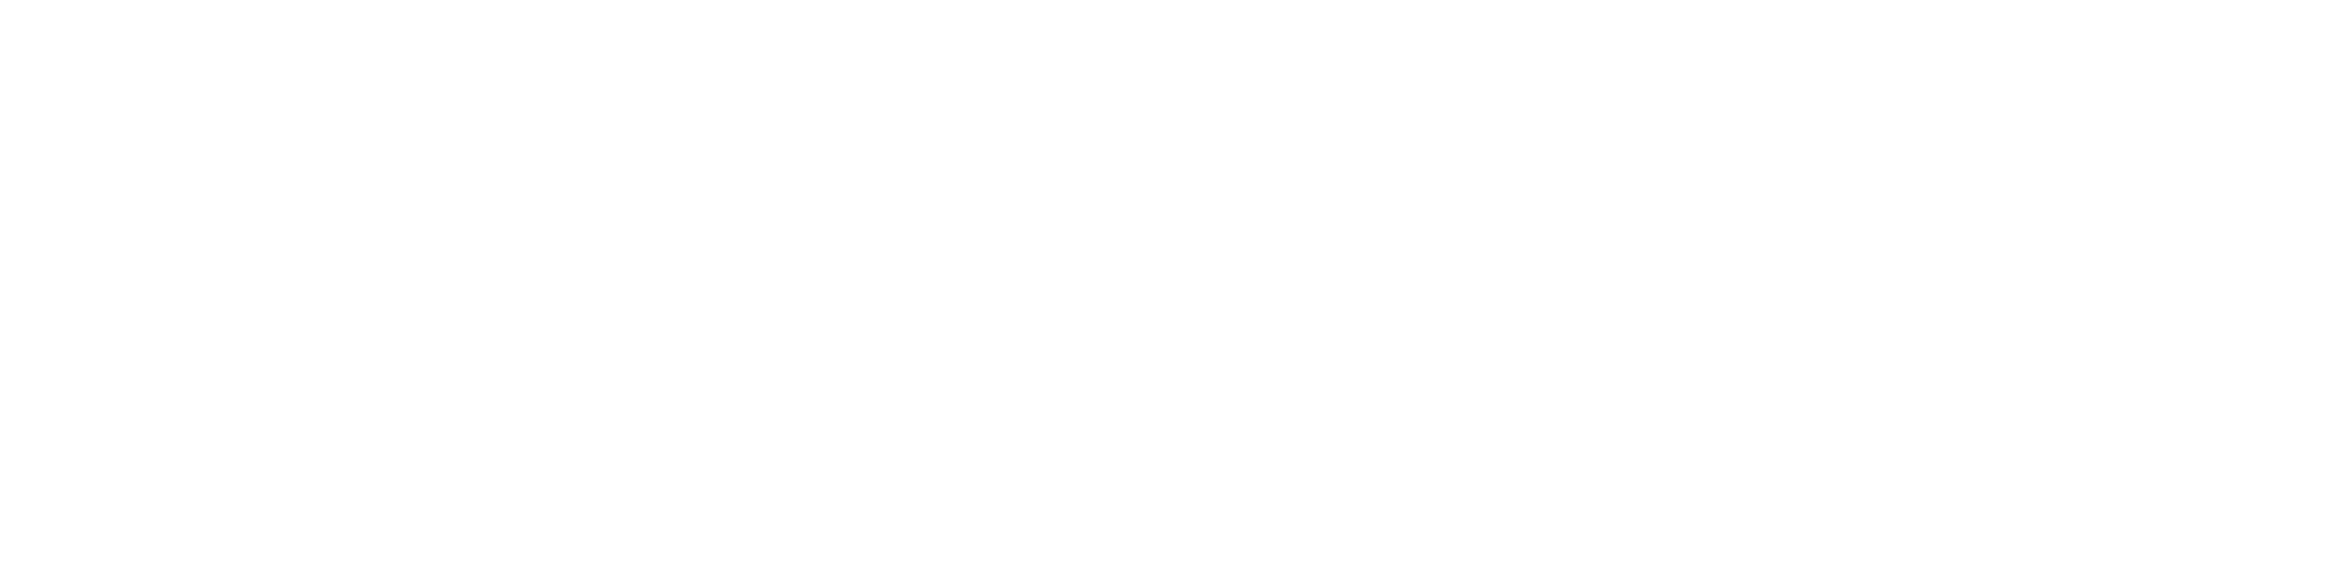 Guide to Responsible Business Engagement with Water Policy (2010)